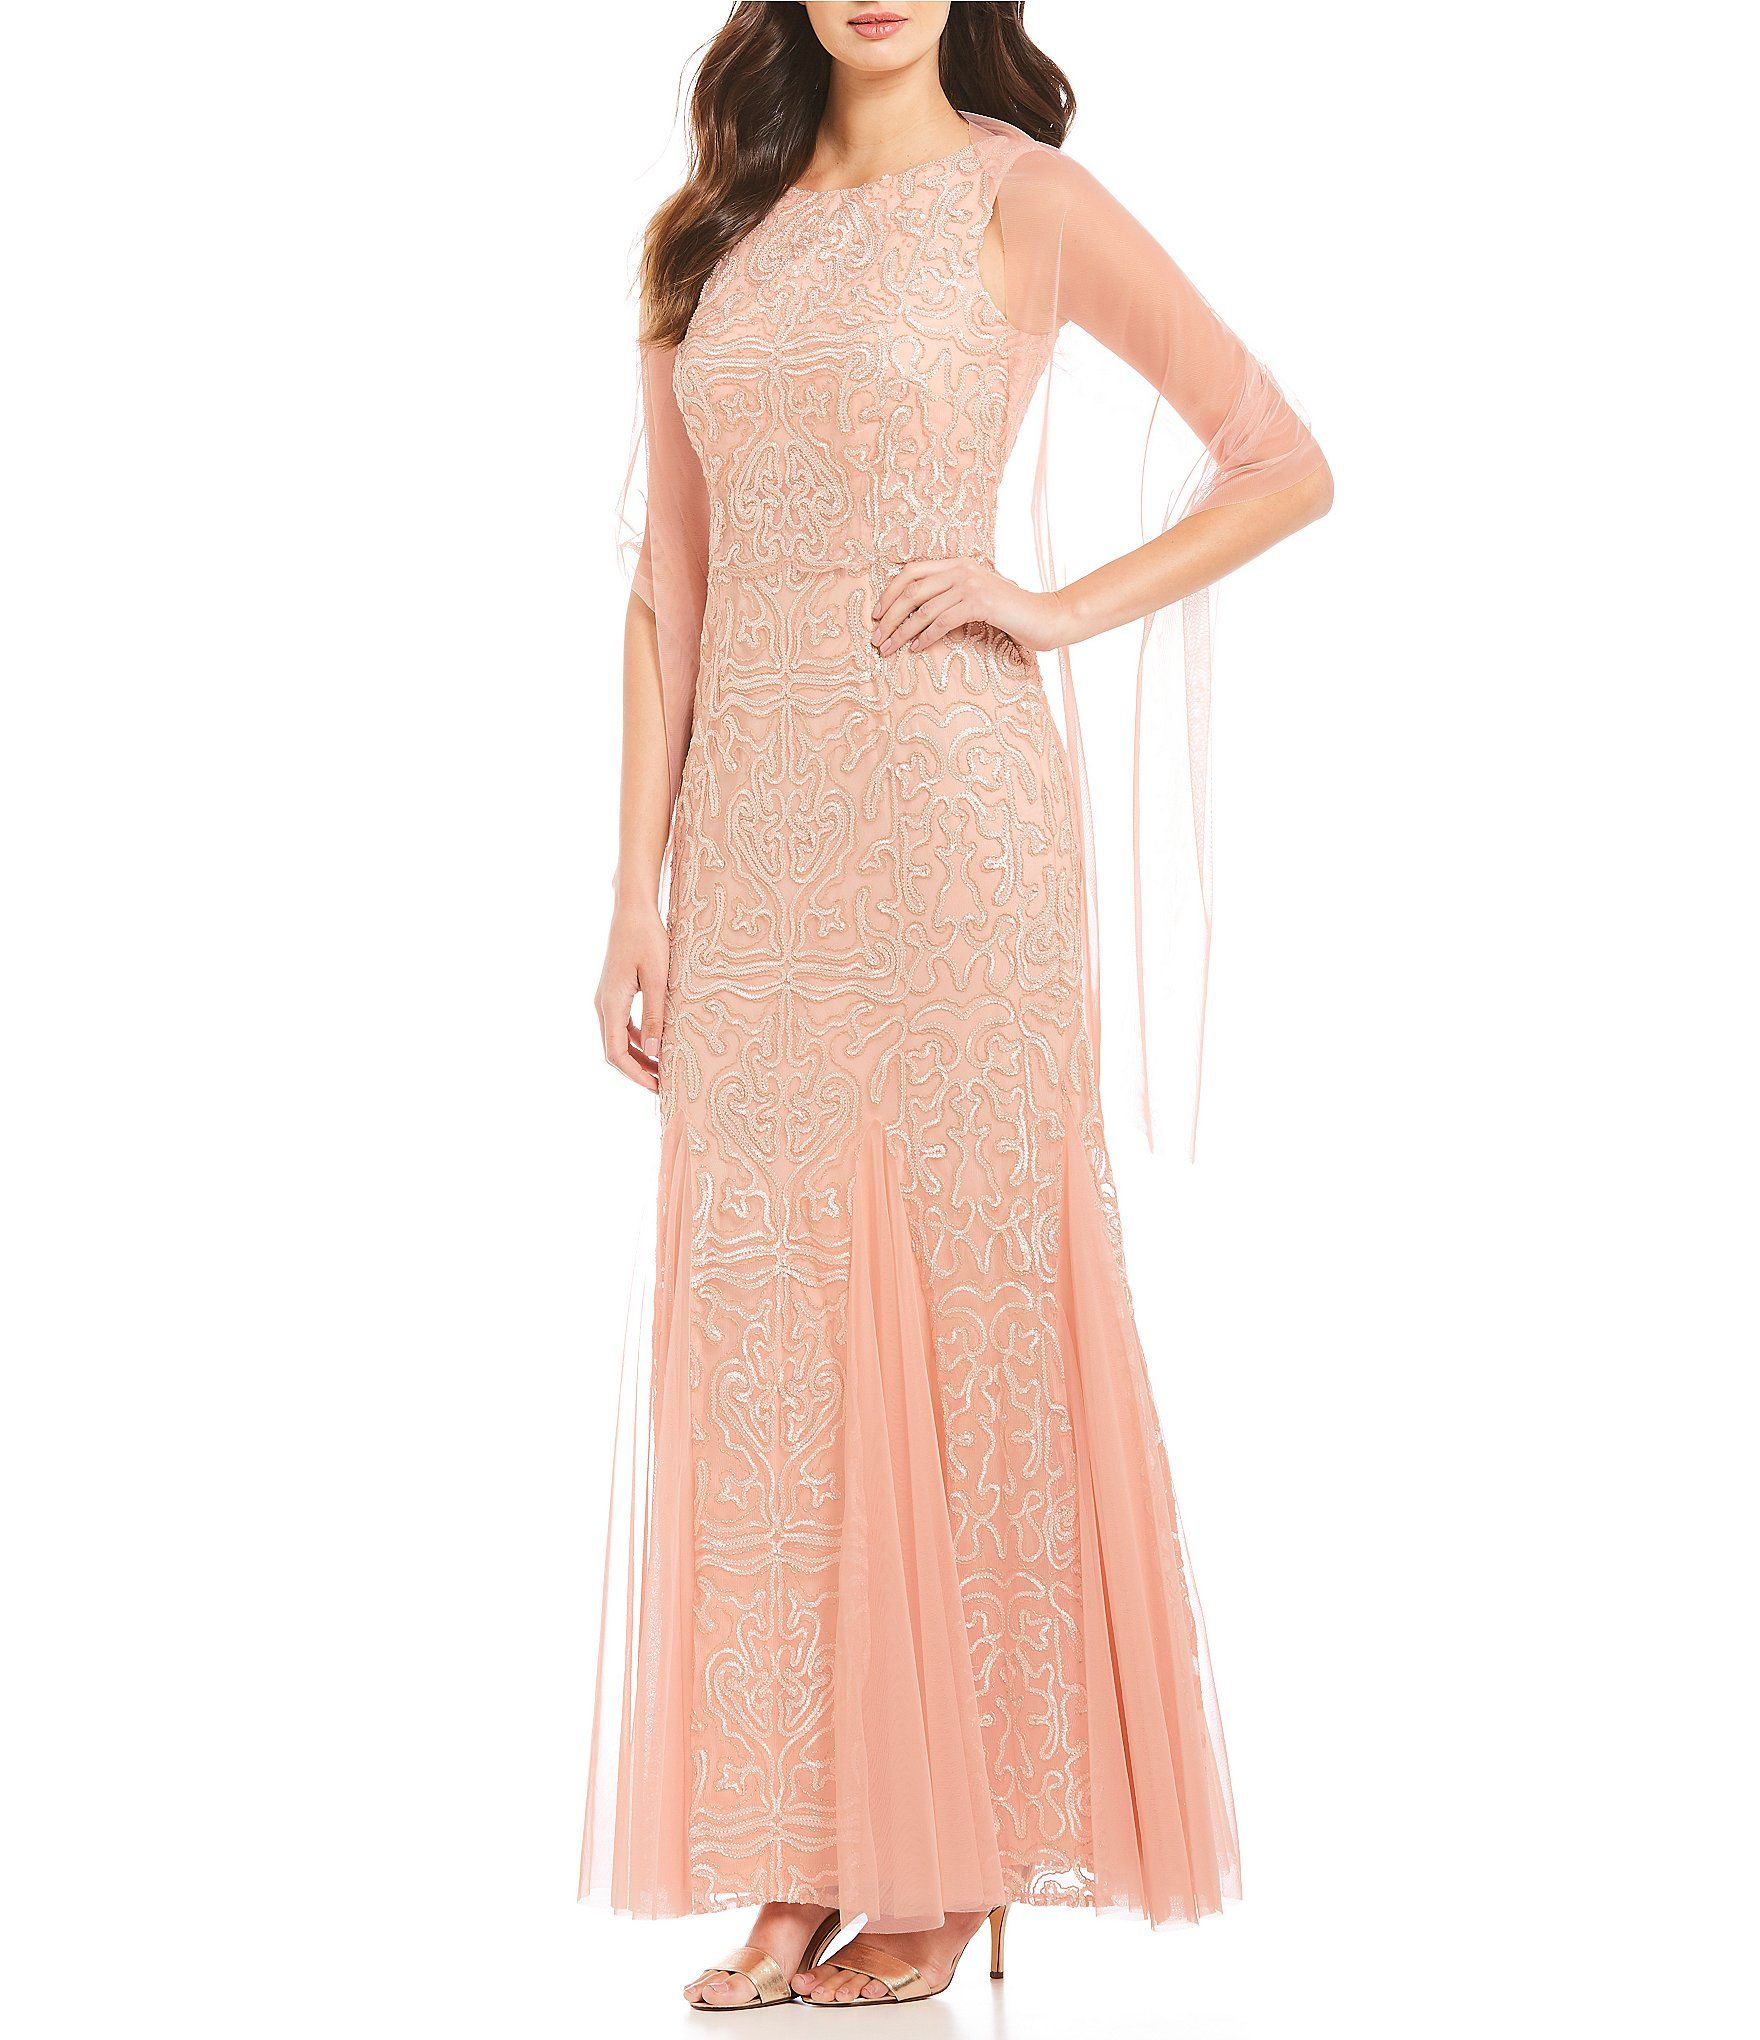 a720a8952f Shop for Emma Street Sleeveless Boat Neck Long Lace Dress at Dillards.com.  Visit Dillards.com to find clothing